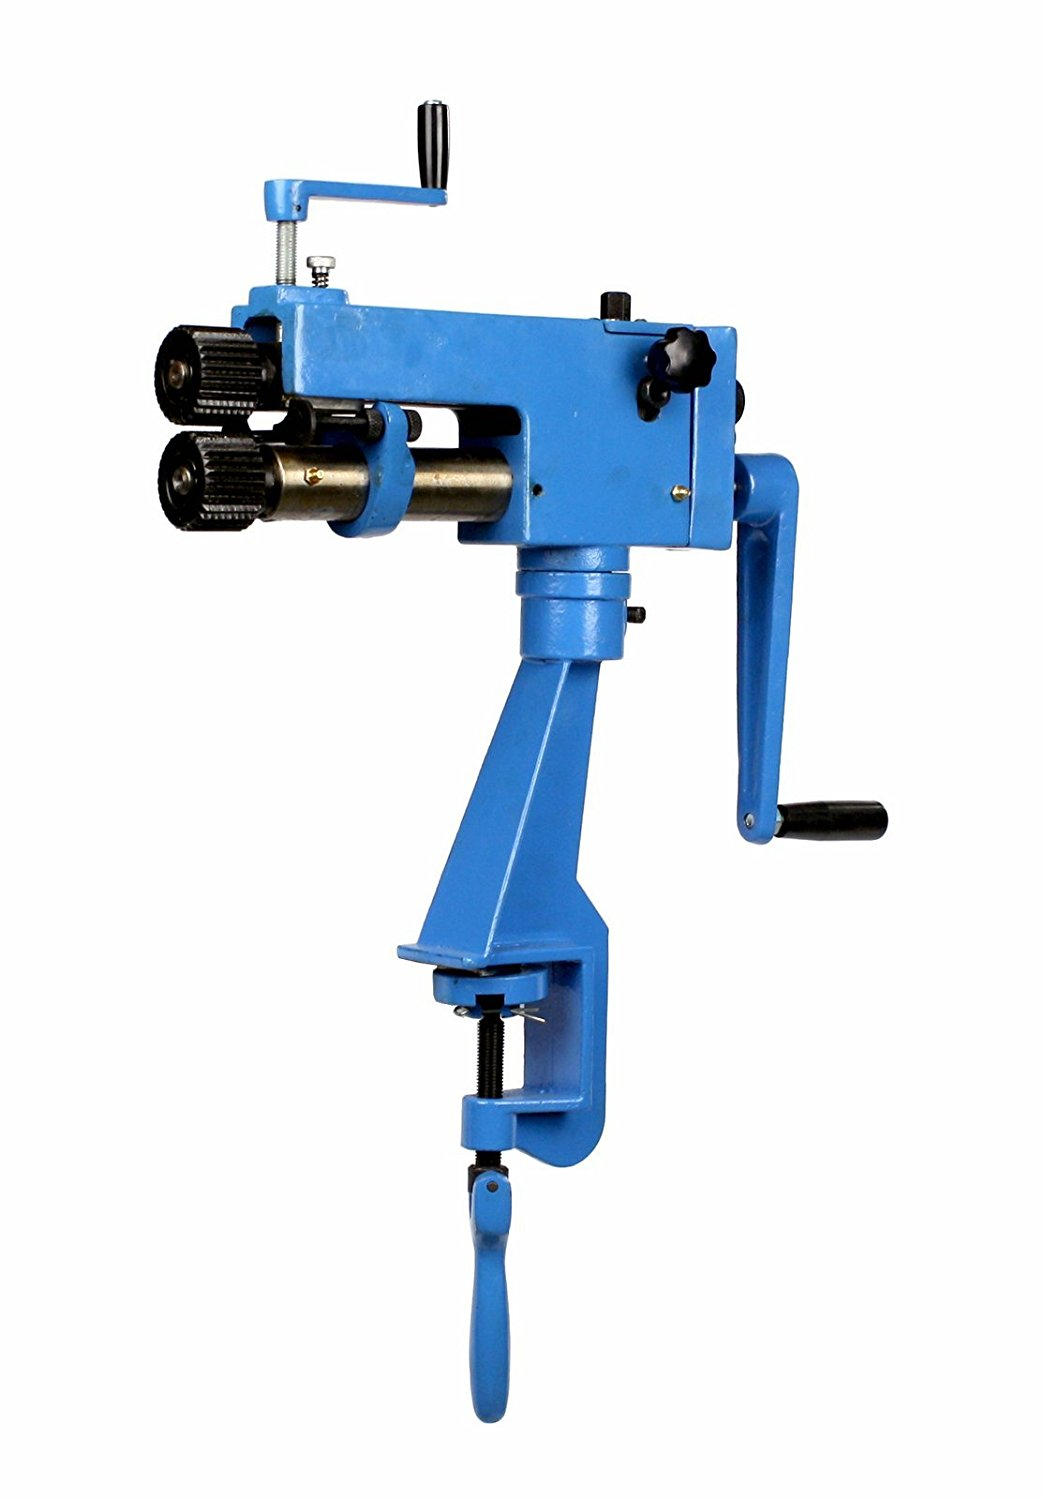 Erie Tools Rotary Machine Bead Roller Sheet Metal Forming & Steel Bender HVAC Fabrication with 22 Gauge Capacity